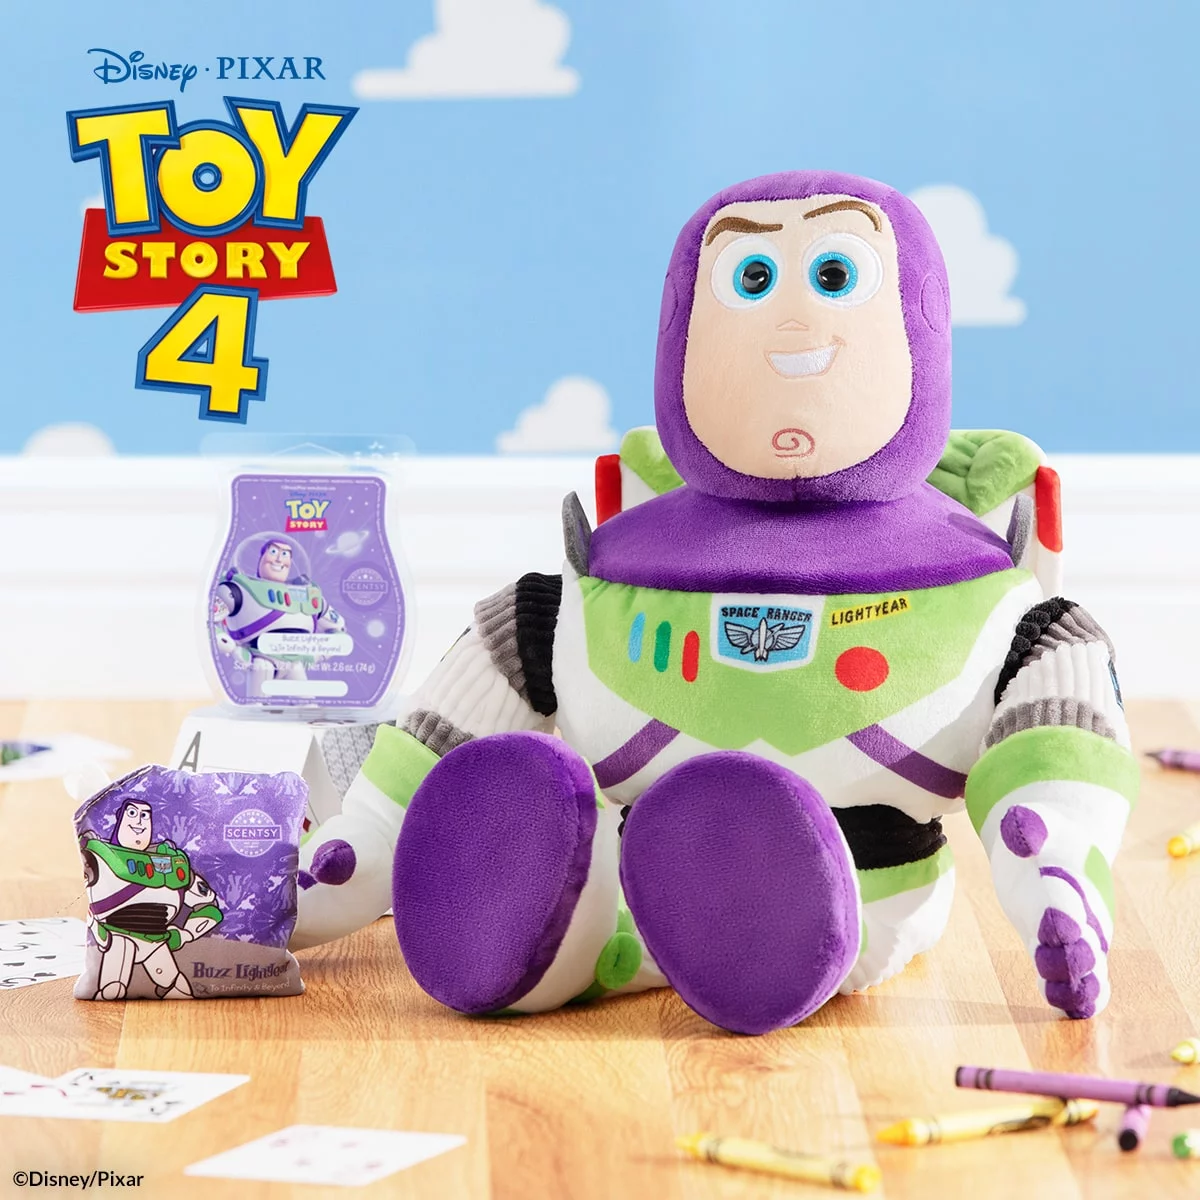 Scentsy S Toy Story 4 Collection Available Now